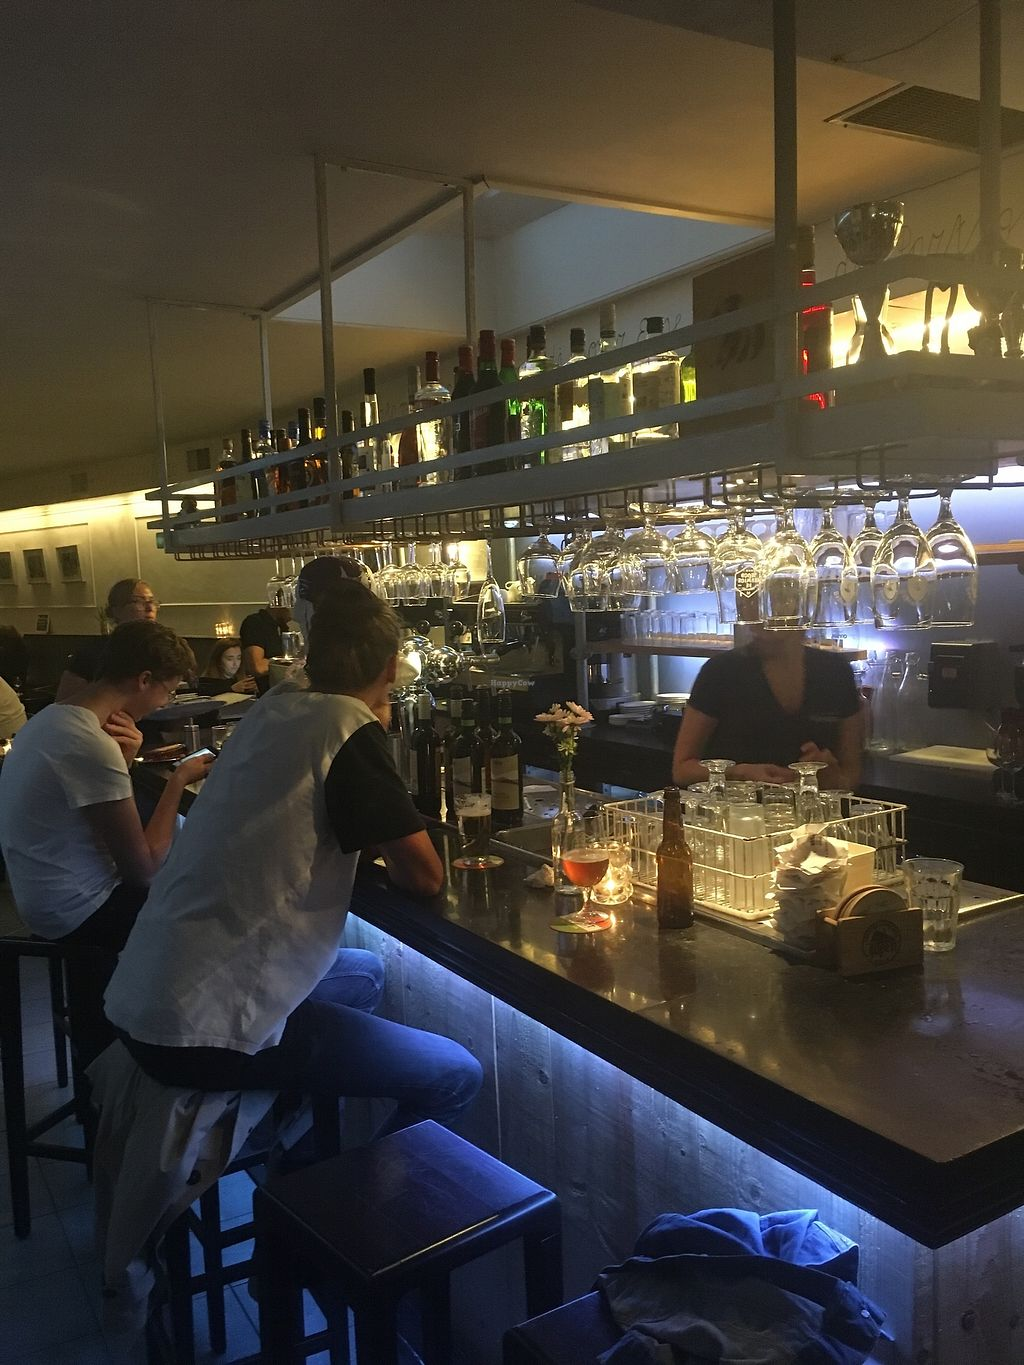 """Photo of Novecento  by <a href=""""/members/profile/AmieMacLean"""">AmieMacLean</a> <br/>Bar at Novecento restaurant <br/> August 18, 2017  - <a href='/contact/abuse/image/90768/294065'>Report</a>"""